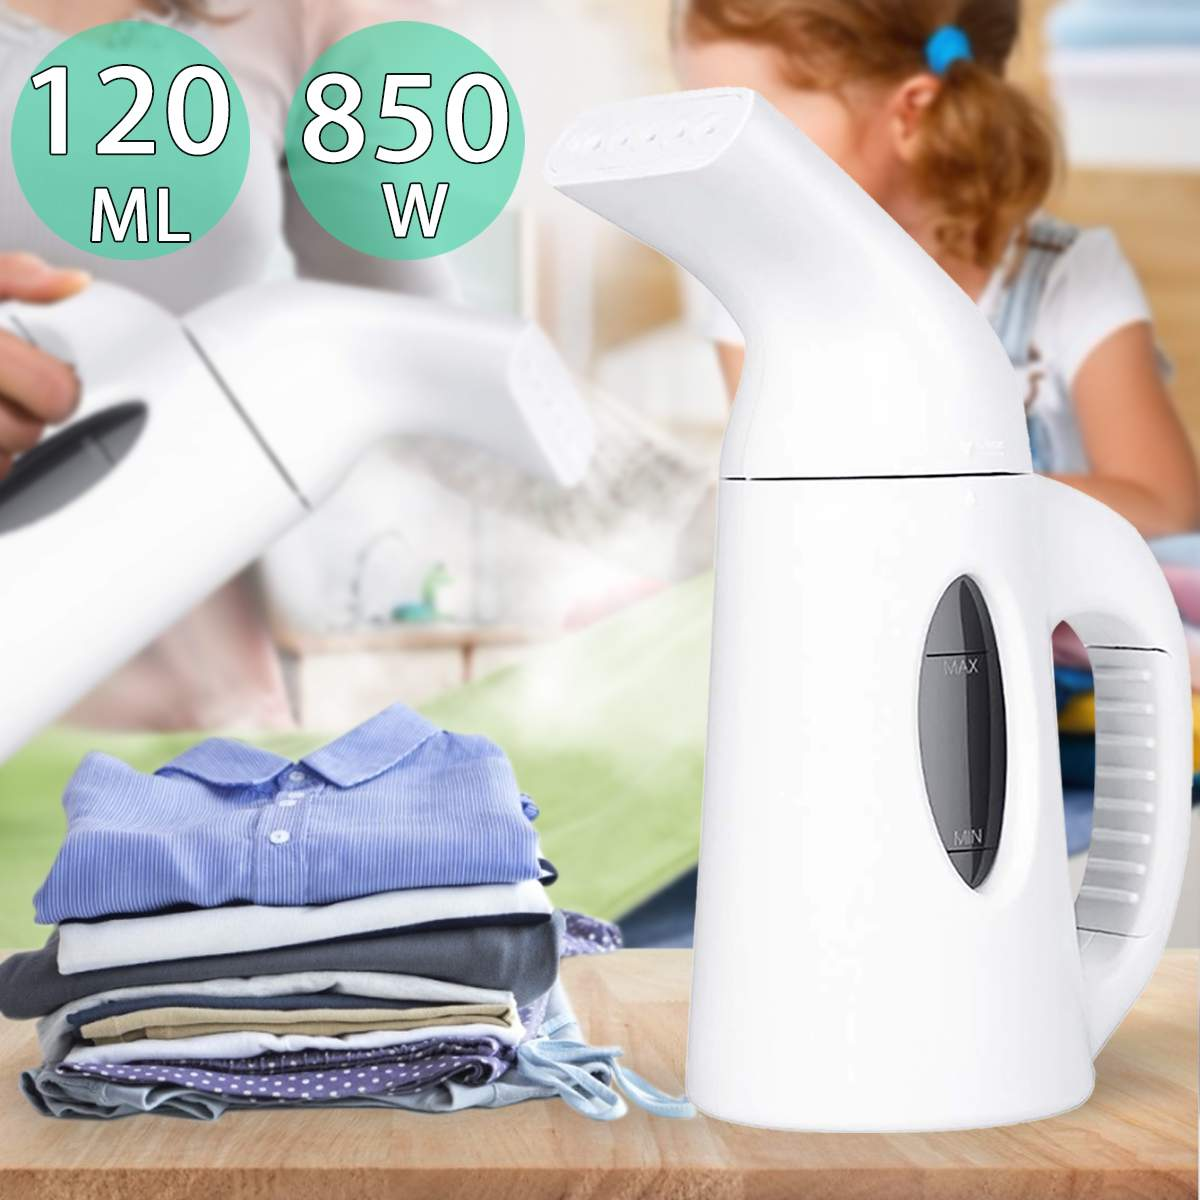 Clothes Steamer Portable Handheld Iron for Home Vertical Garment Steamers Steam Machine Ironing for Home Appliances for travel